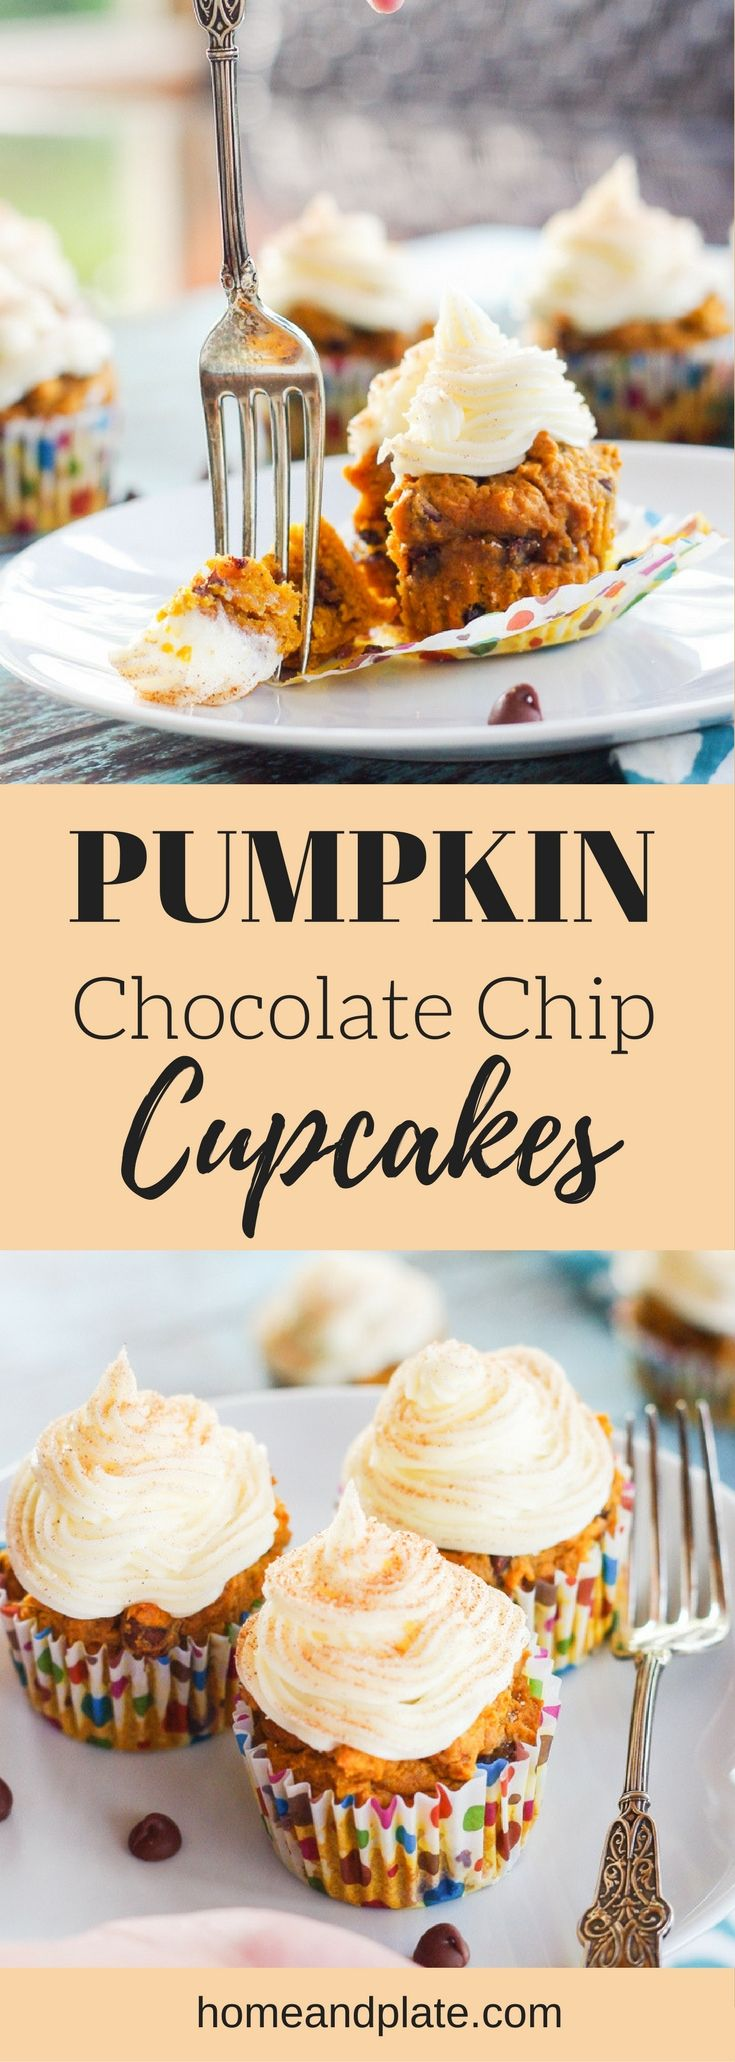 Pumpkin Chocolate Chip Cupcakes | Delicious for fa…